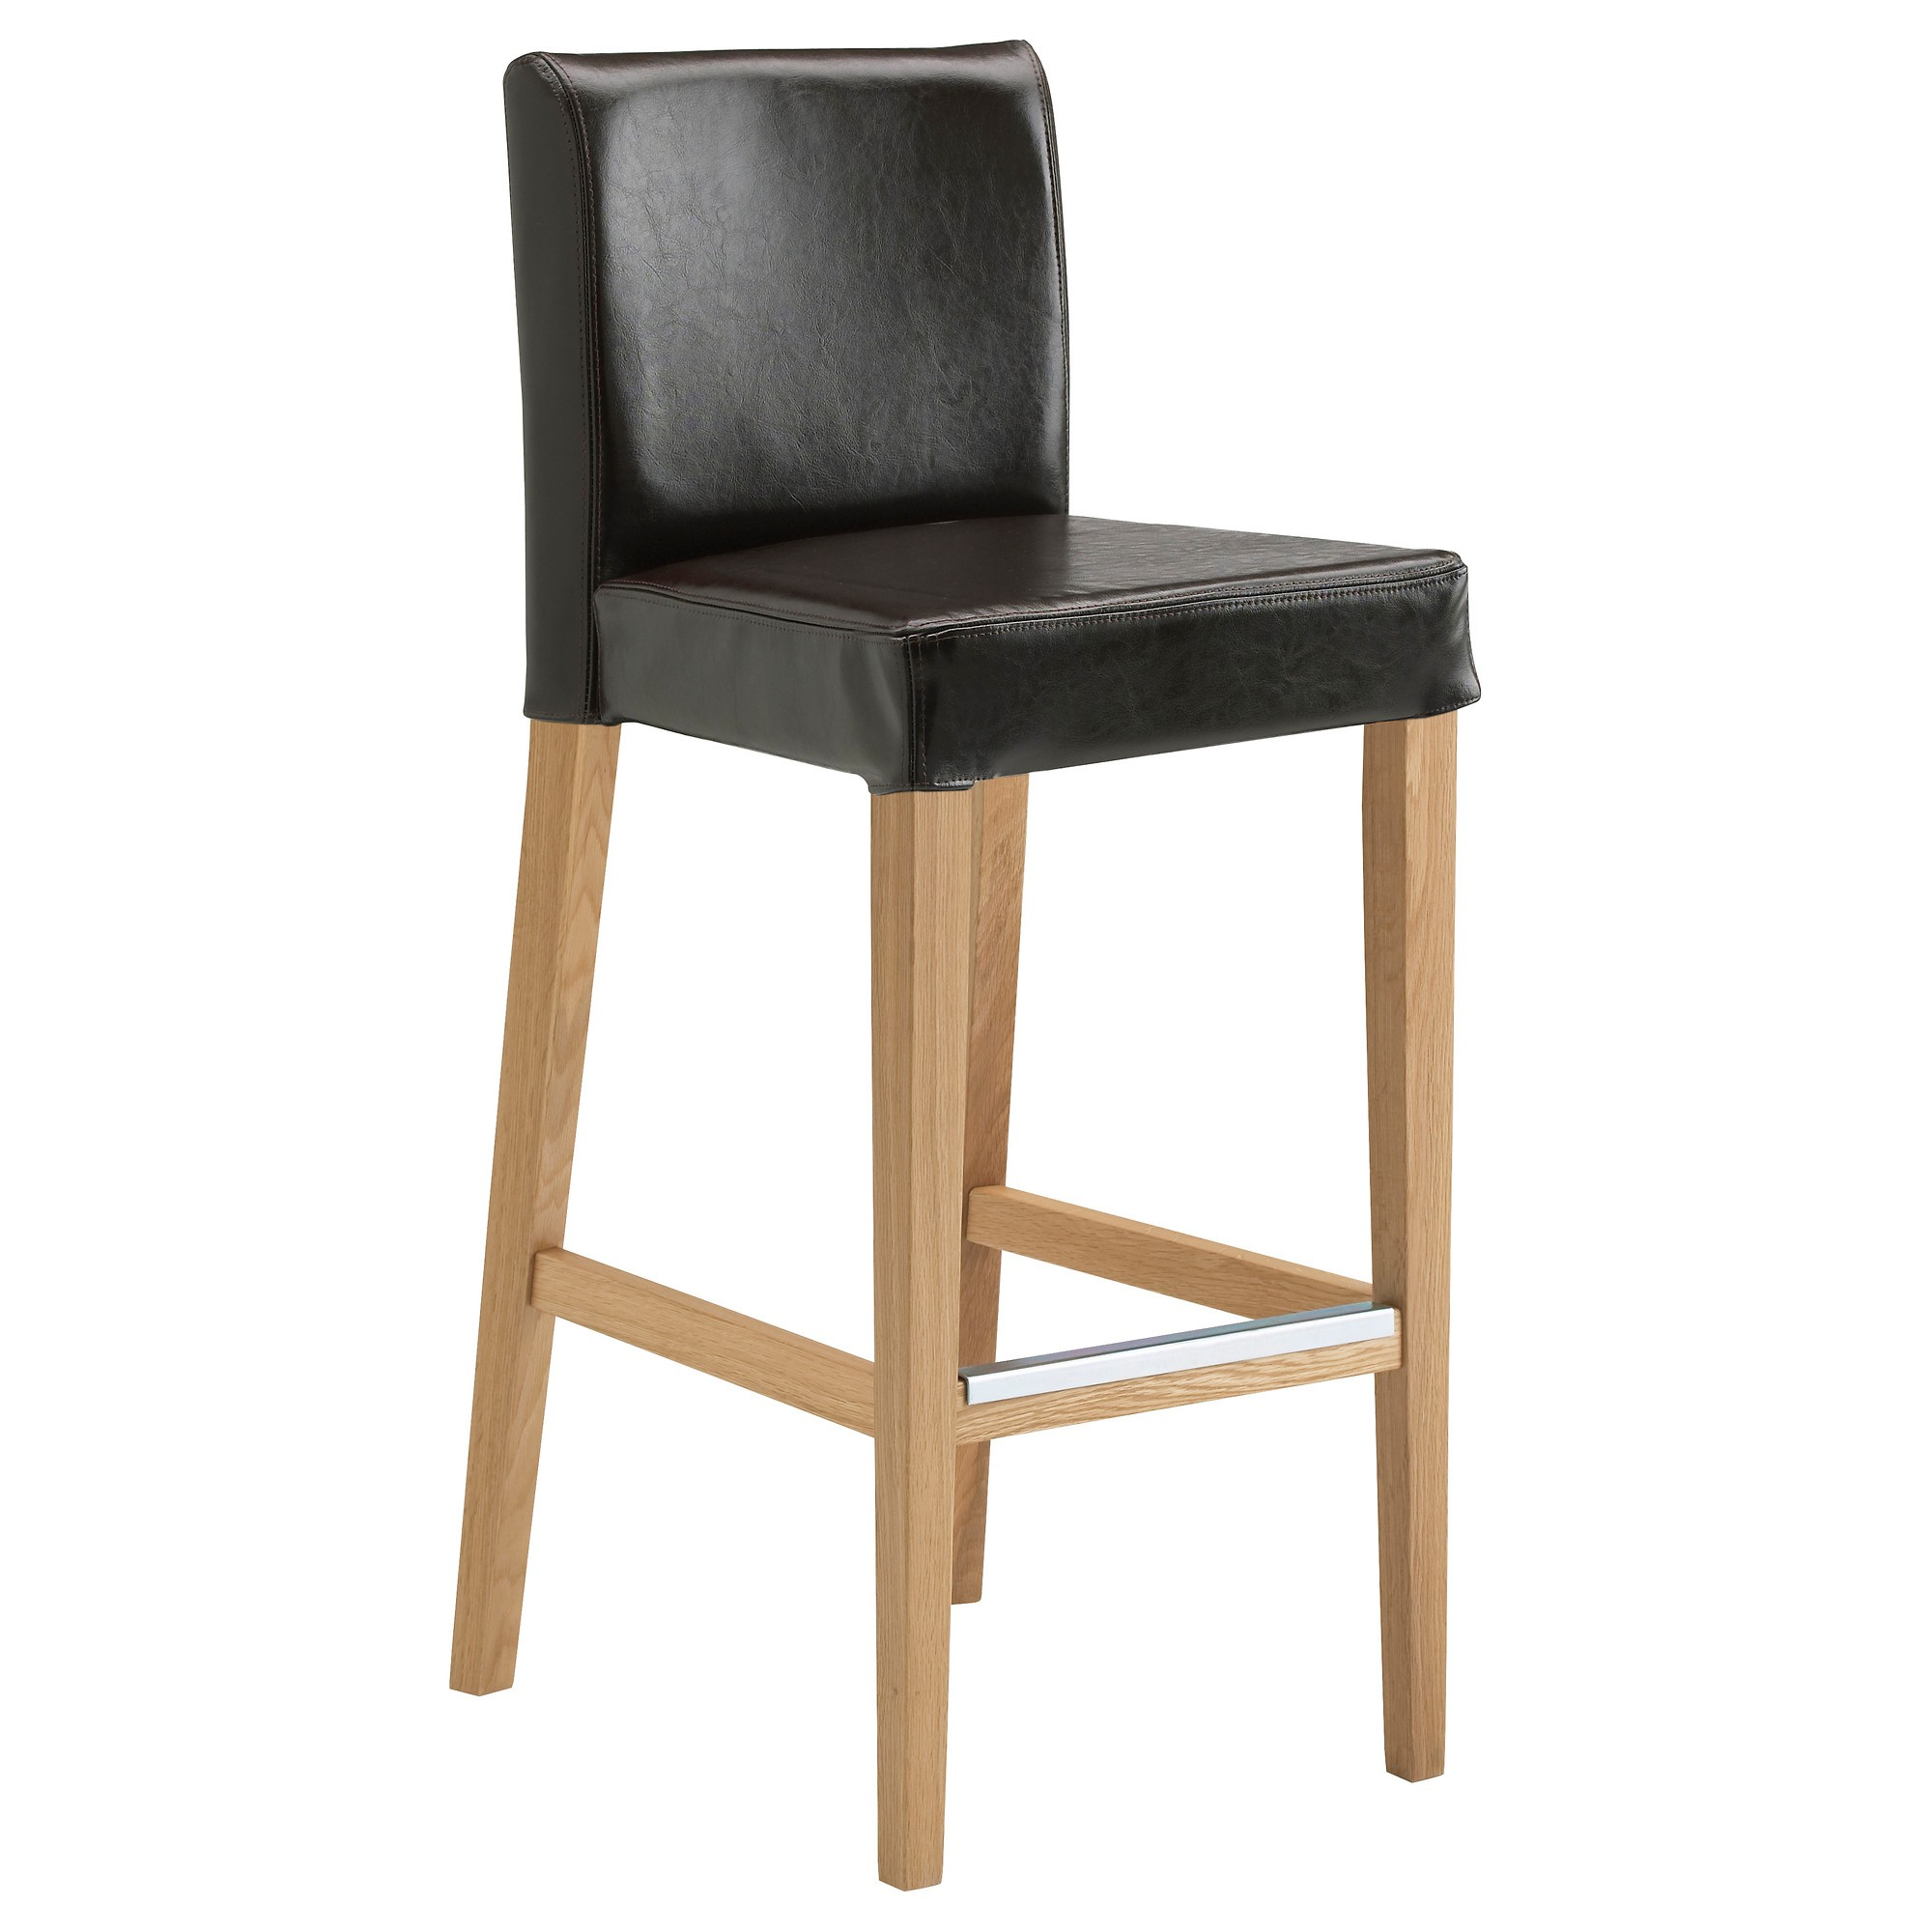 awesome beau ikea tabouret de bar en bois mobilier maison table source ikea chaise de bar table. Black Bedroom Furniture Sets. Home Design Ideas